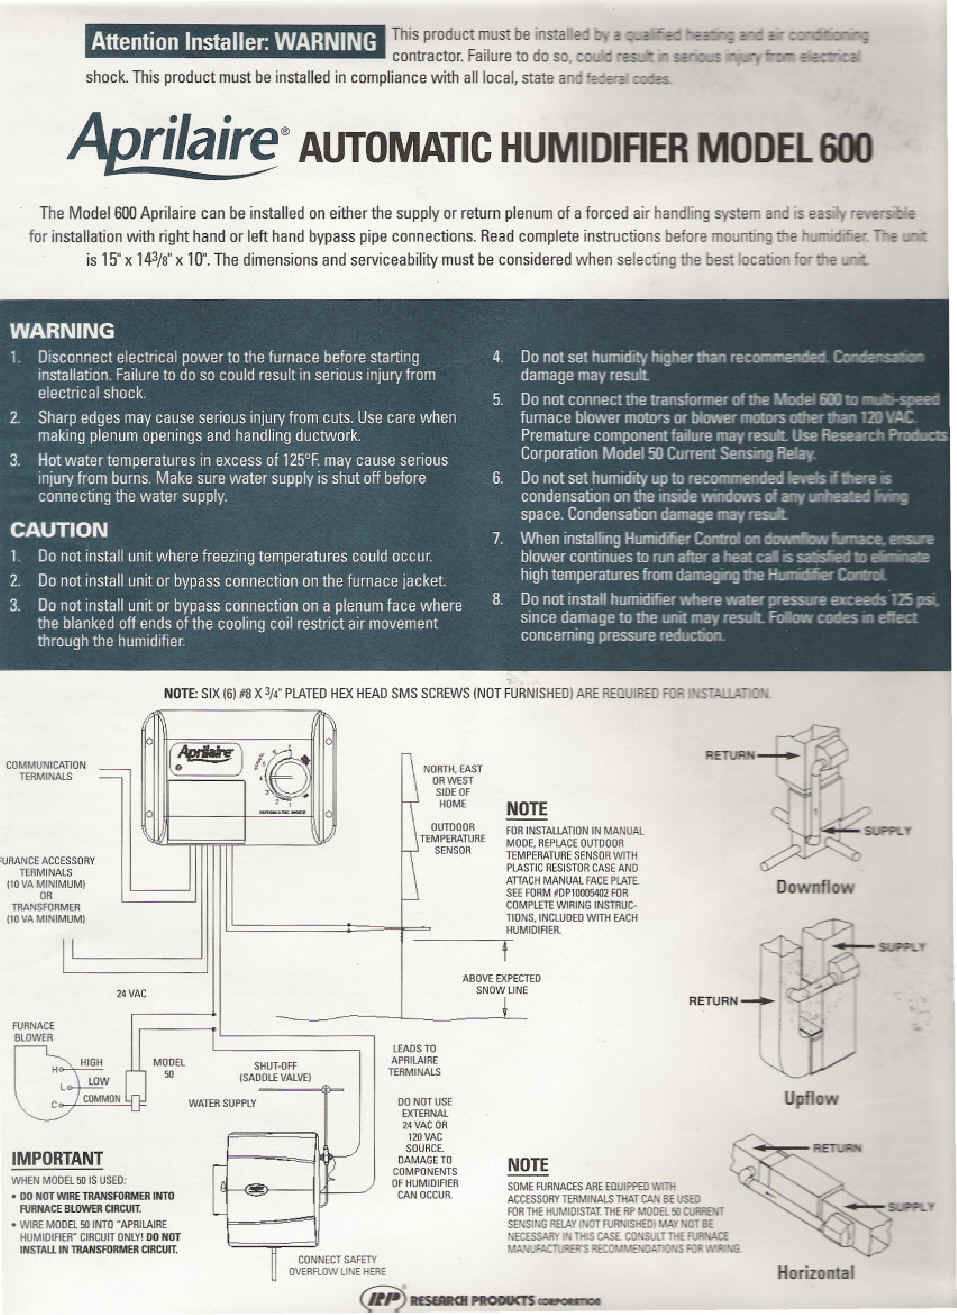 York Economizer Wiring Diagram 30 Images Furnace Schematic Full Humidifier Education Aprilaire Template At